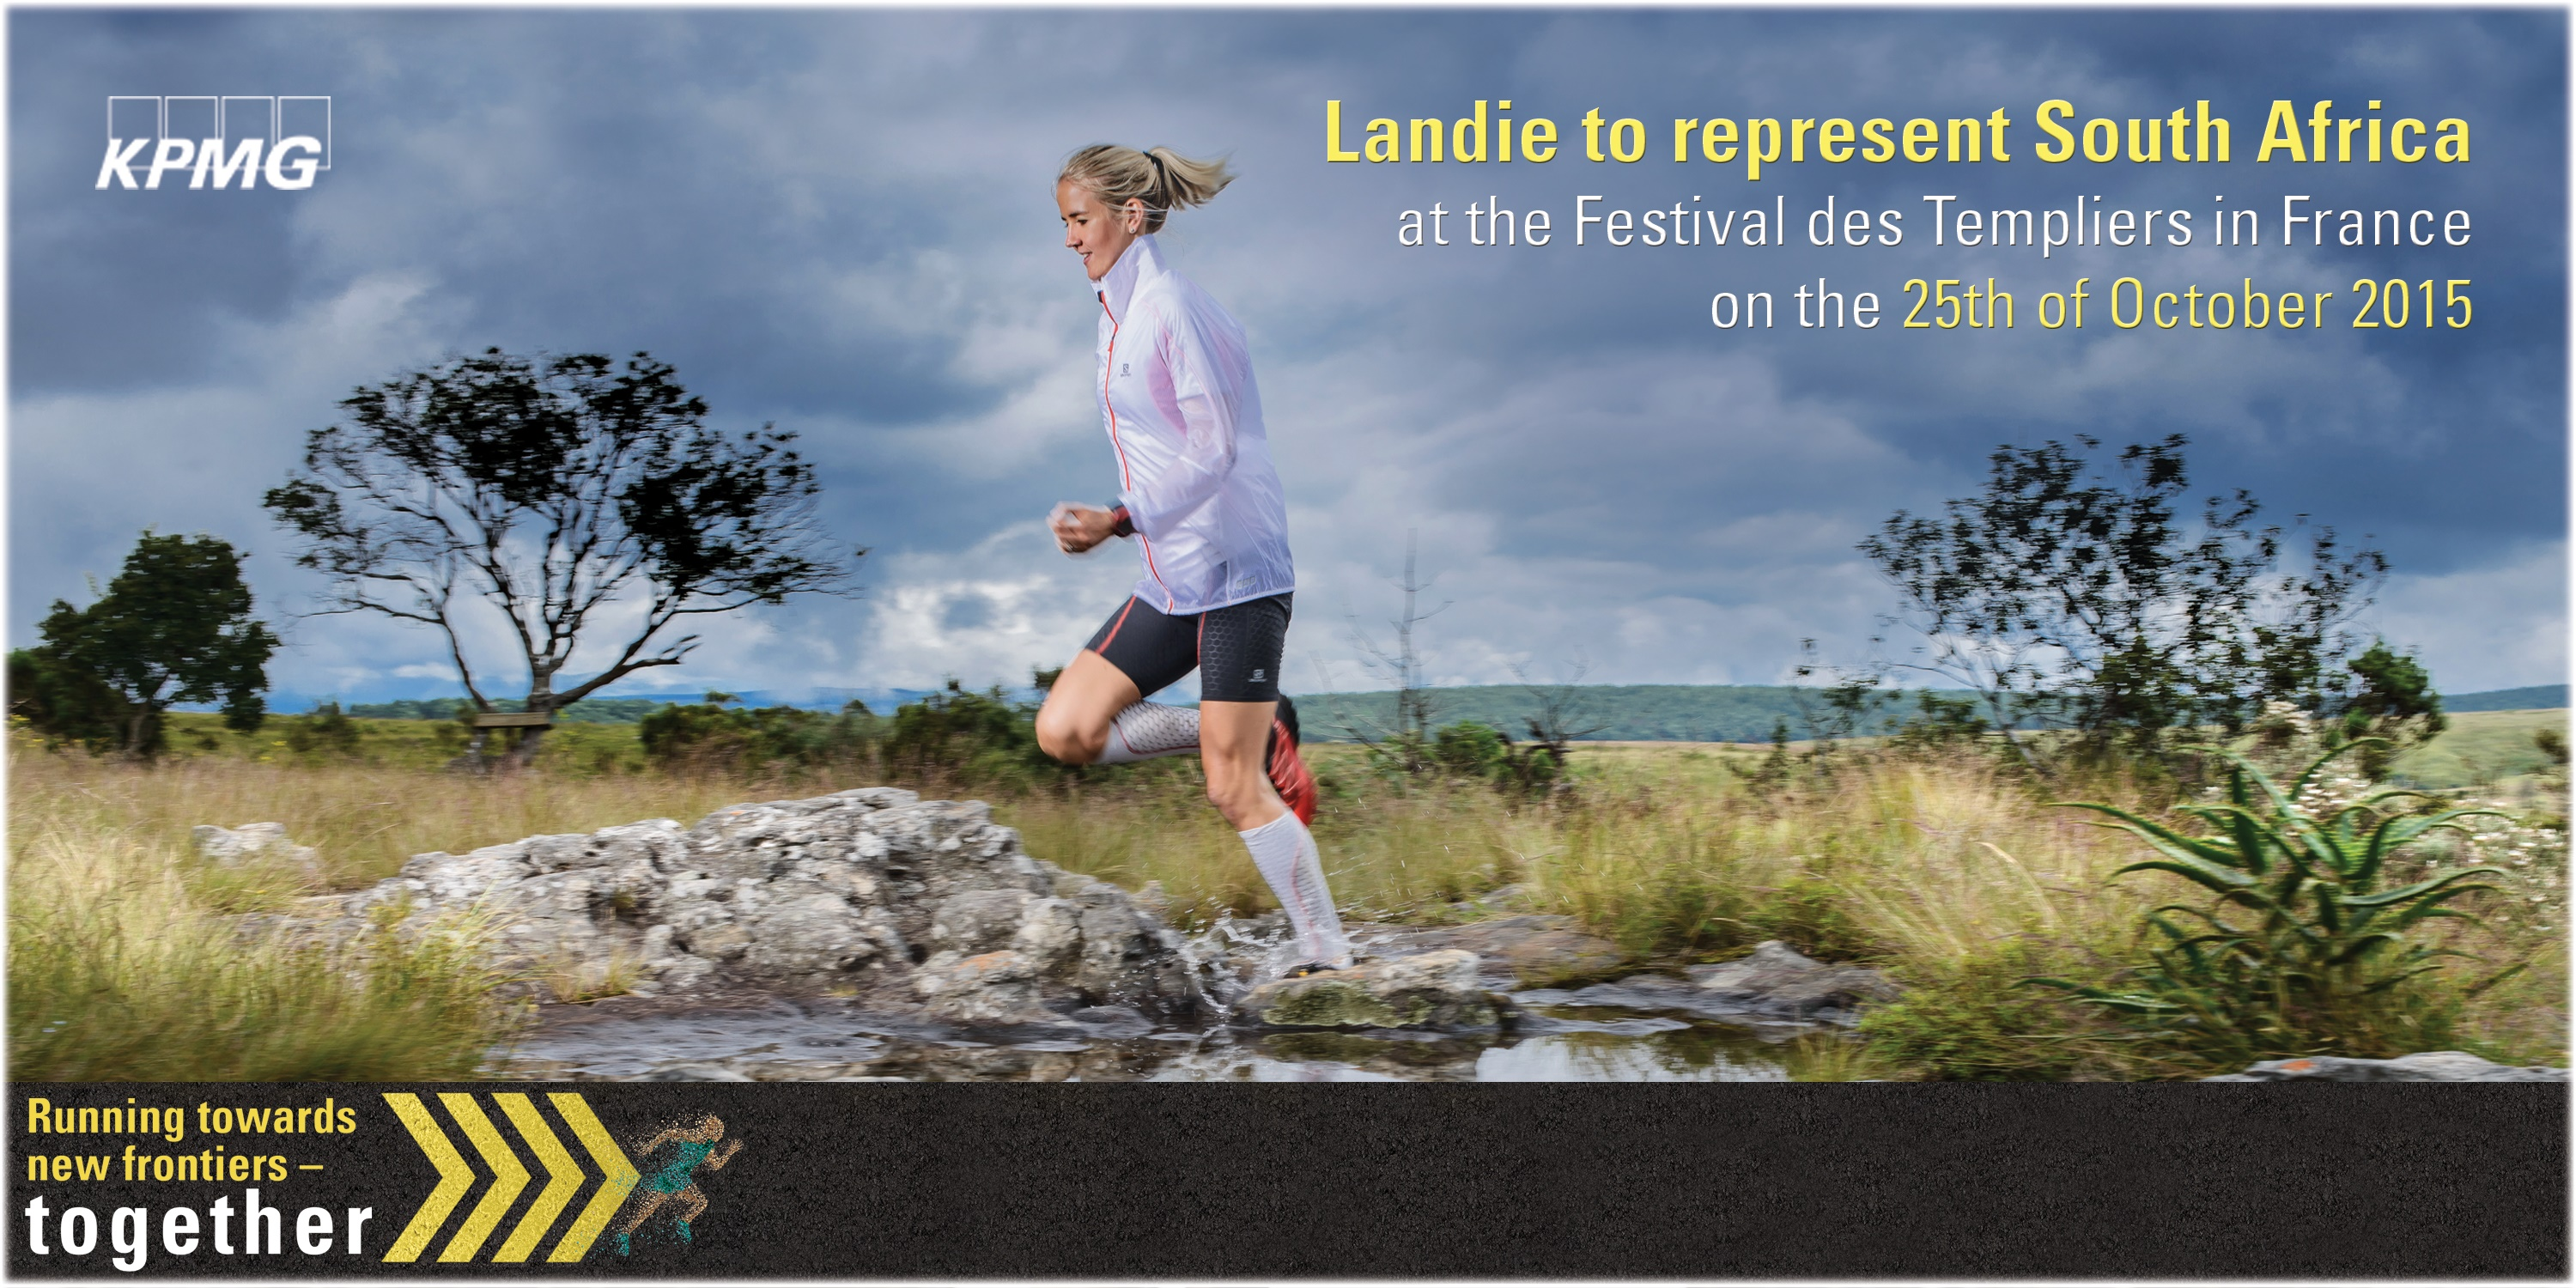 Festival des Templiers: Team SA to compete against the world on 25 October 2015